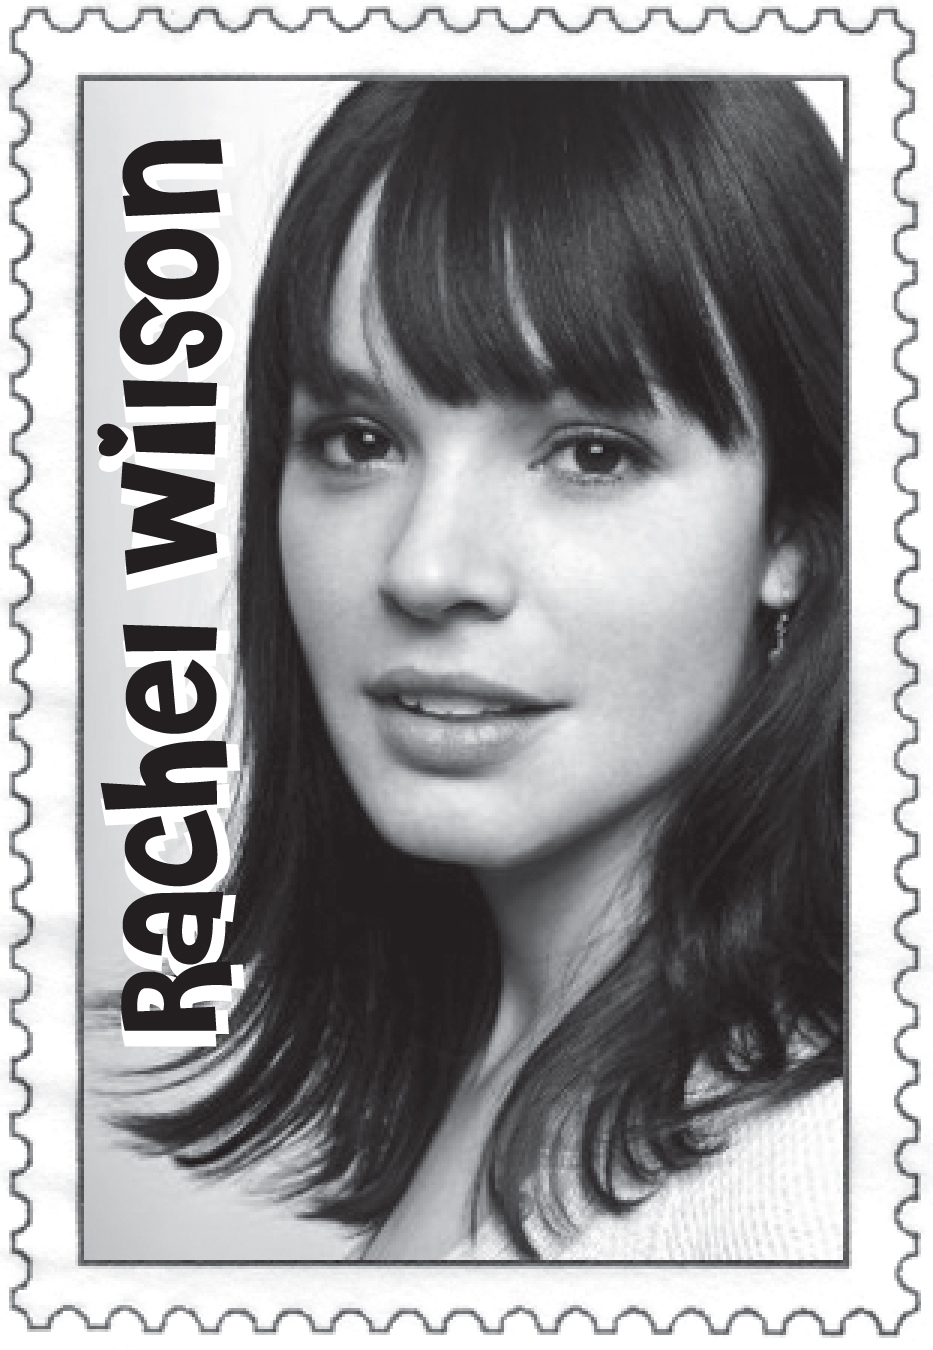 Rachel Wilson's MapleLeafForever stamp on the back of #CCT0106.